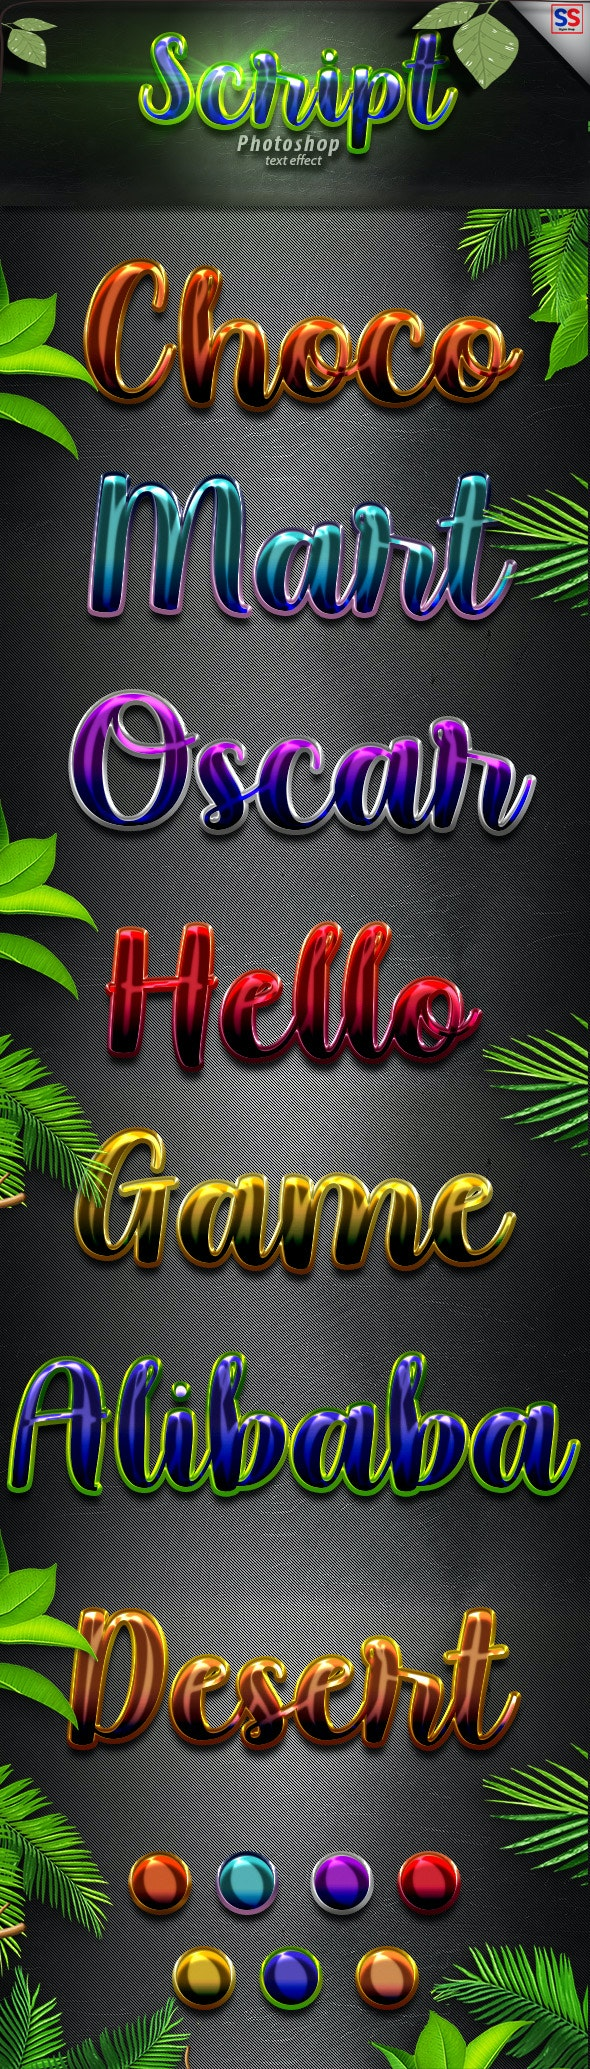 Script Photoshop Text Effect - Text Effects Styles